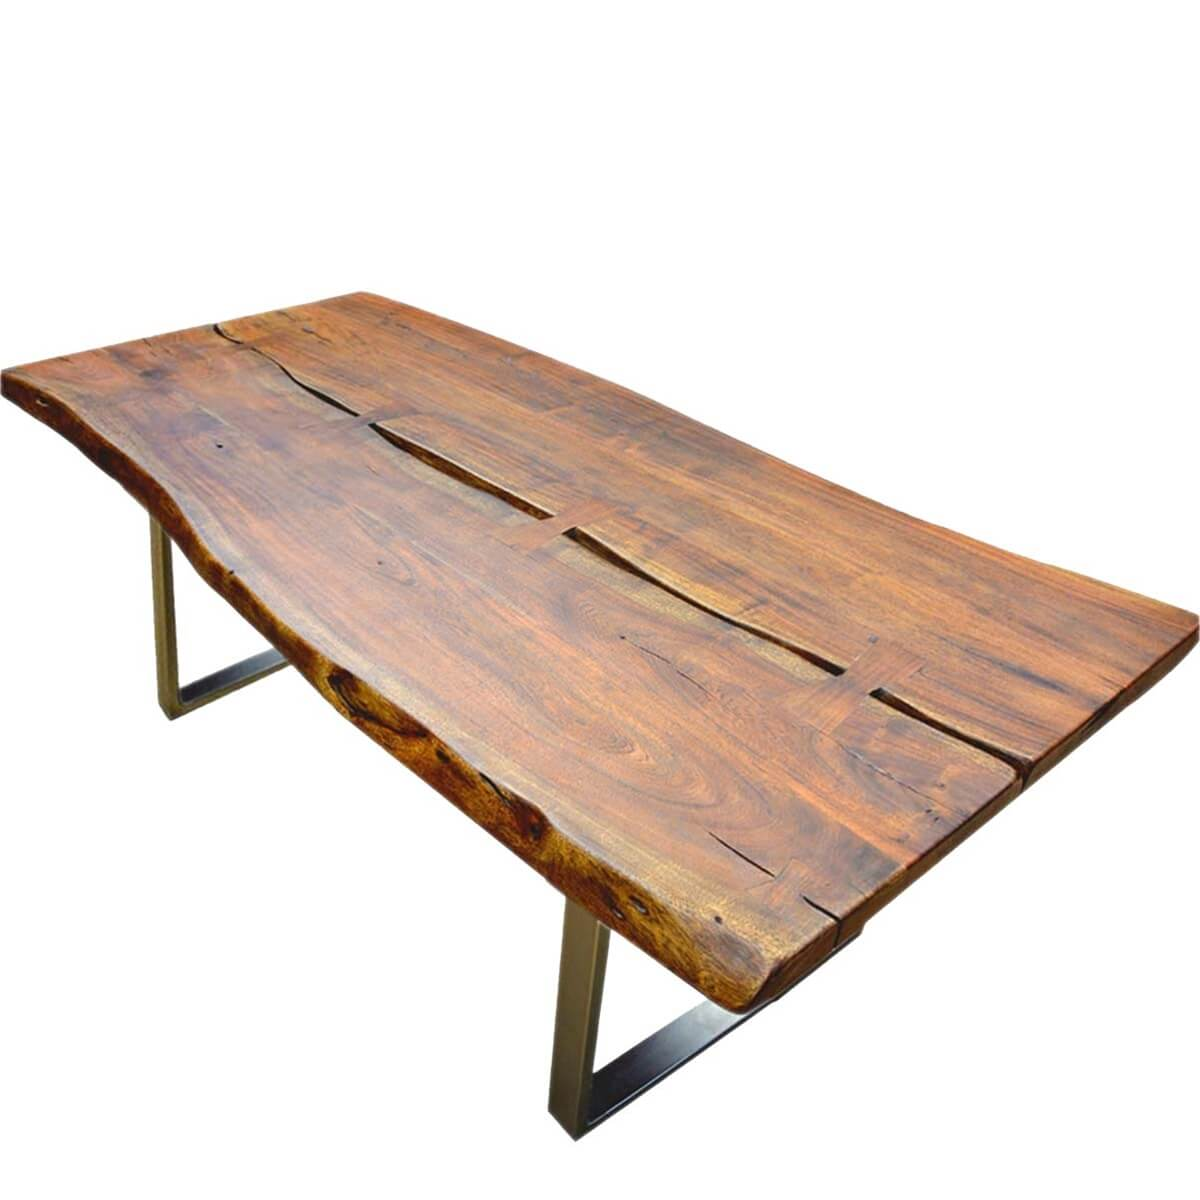 Acacia Dining Table Live Edge Acacia Wood And Iron Rustic Large Dining Table